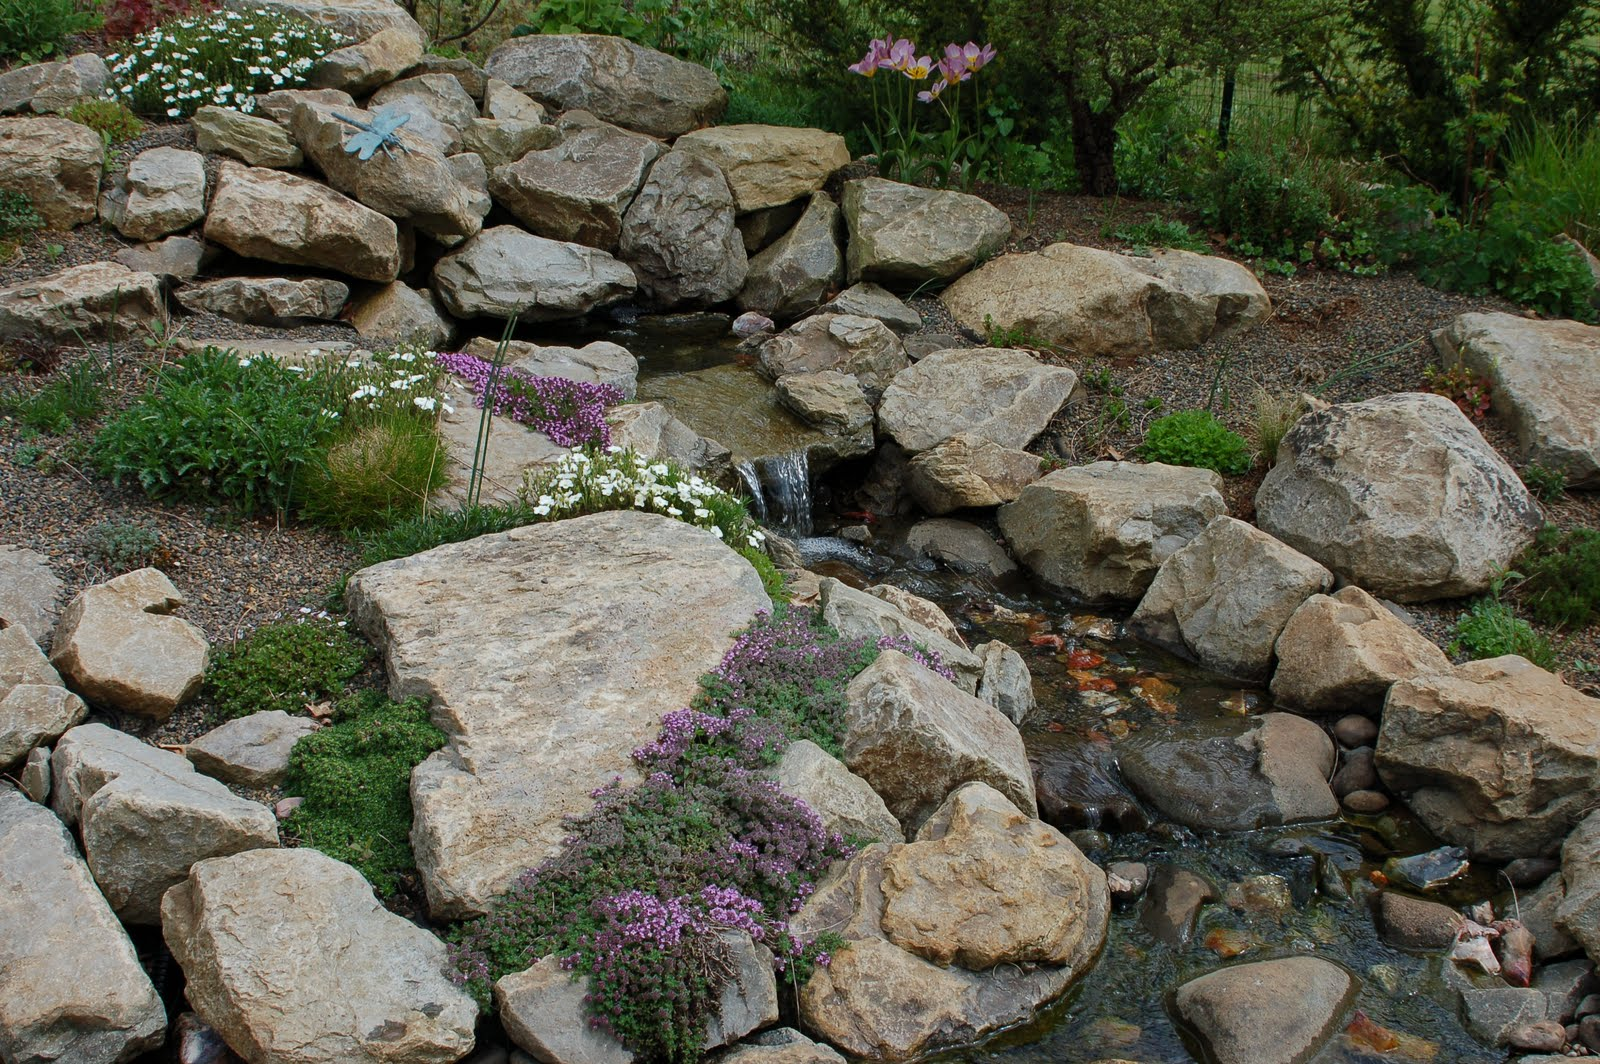 Wild ginger farm news blog crevice plants Small rock garden